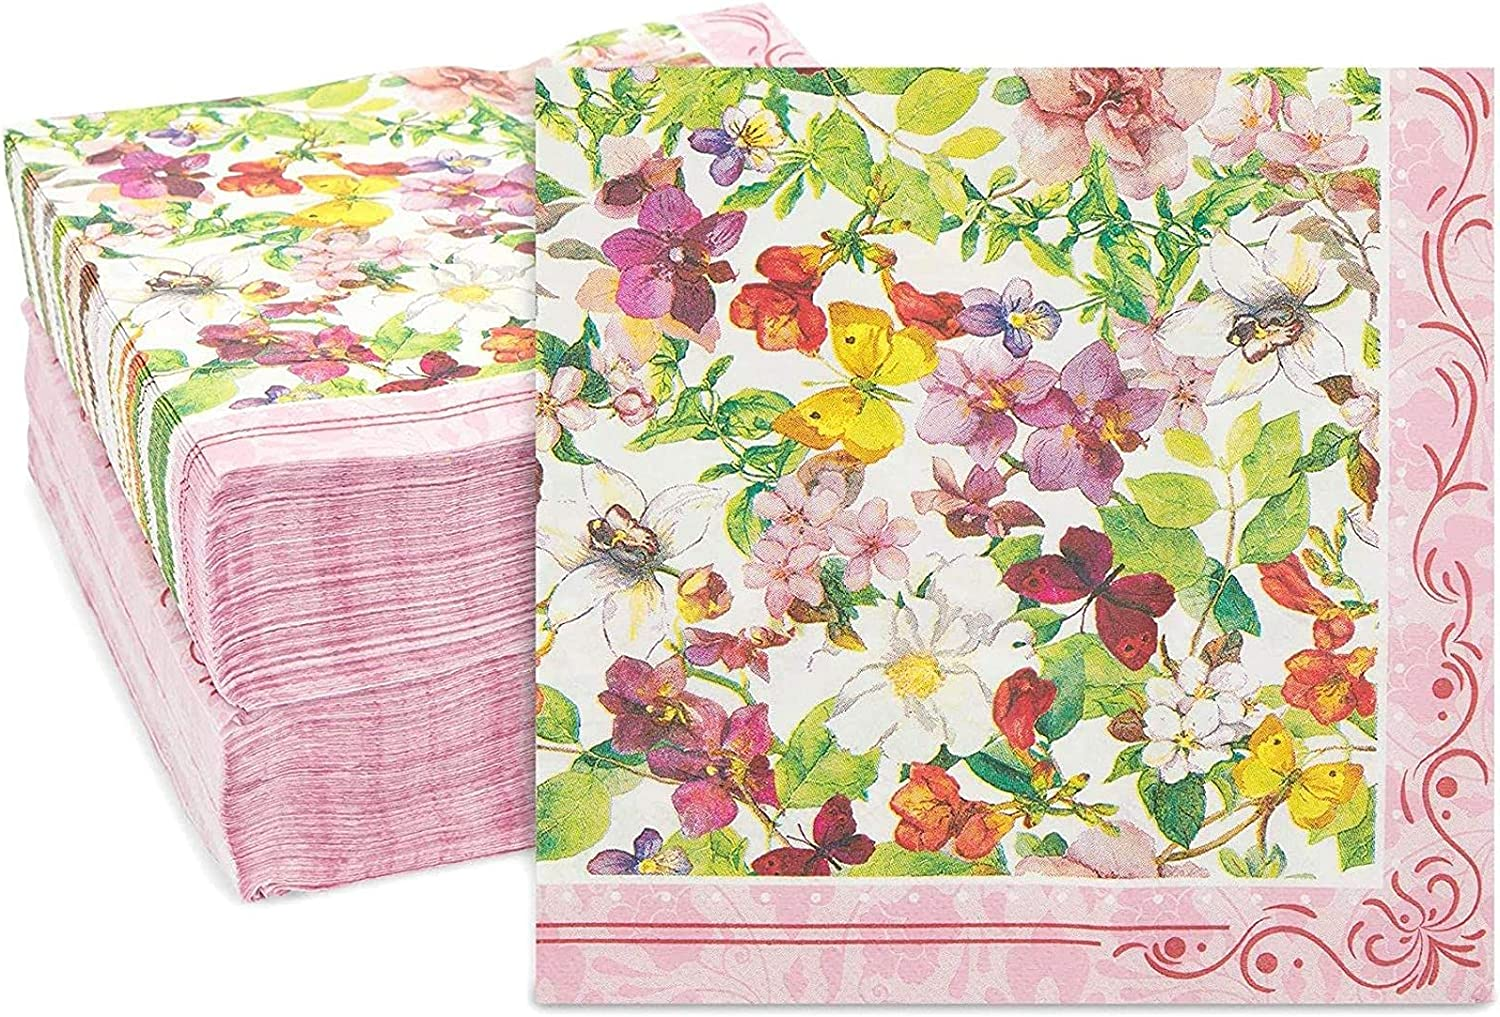 Popular products Vintage Long-awaited Floral Paper Napkins Watercolor x In 6.5 Blossoms